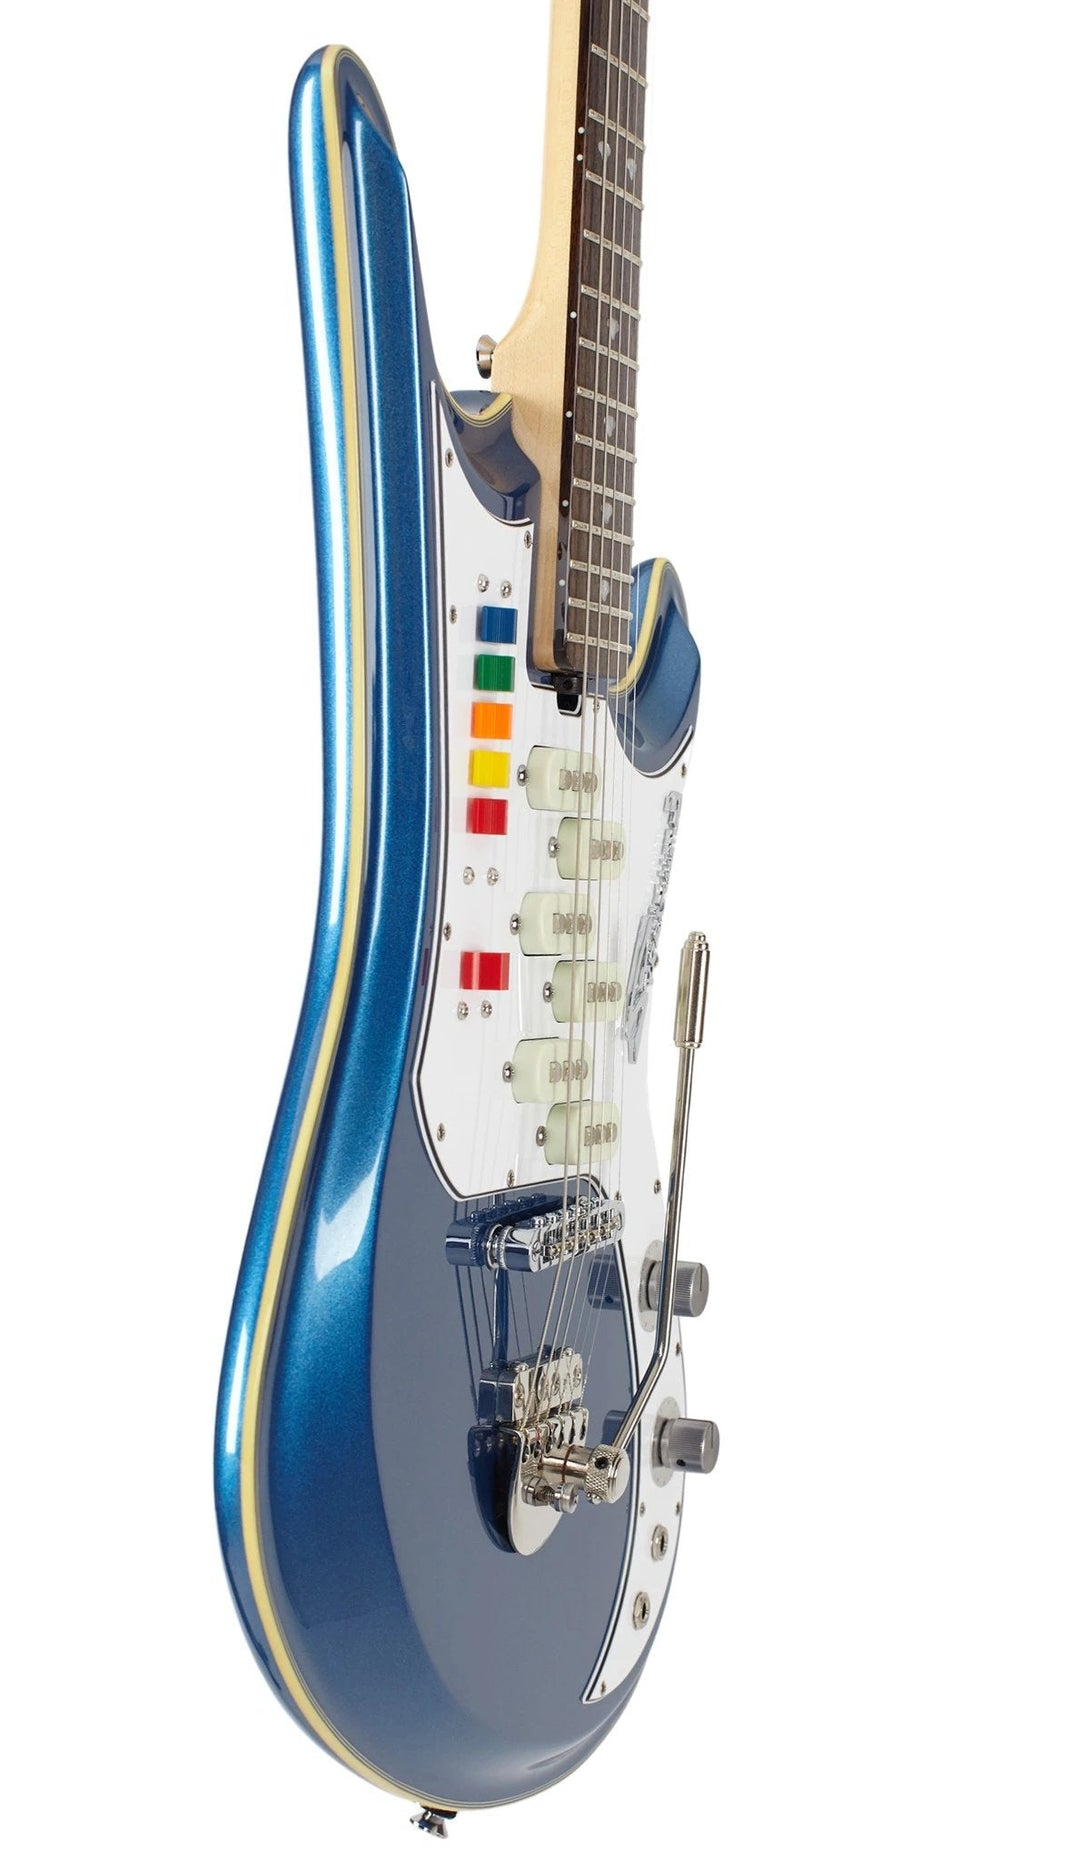 Eastwood Guitars Spectrum 5 PRO Metallic Blue Player POV